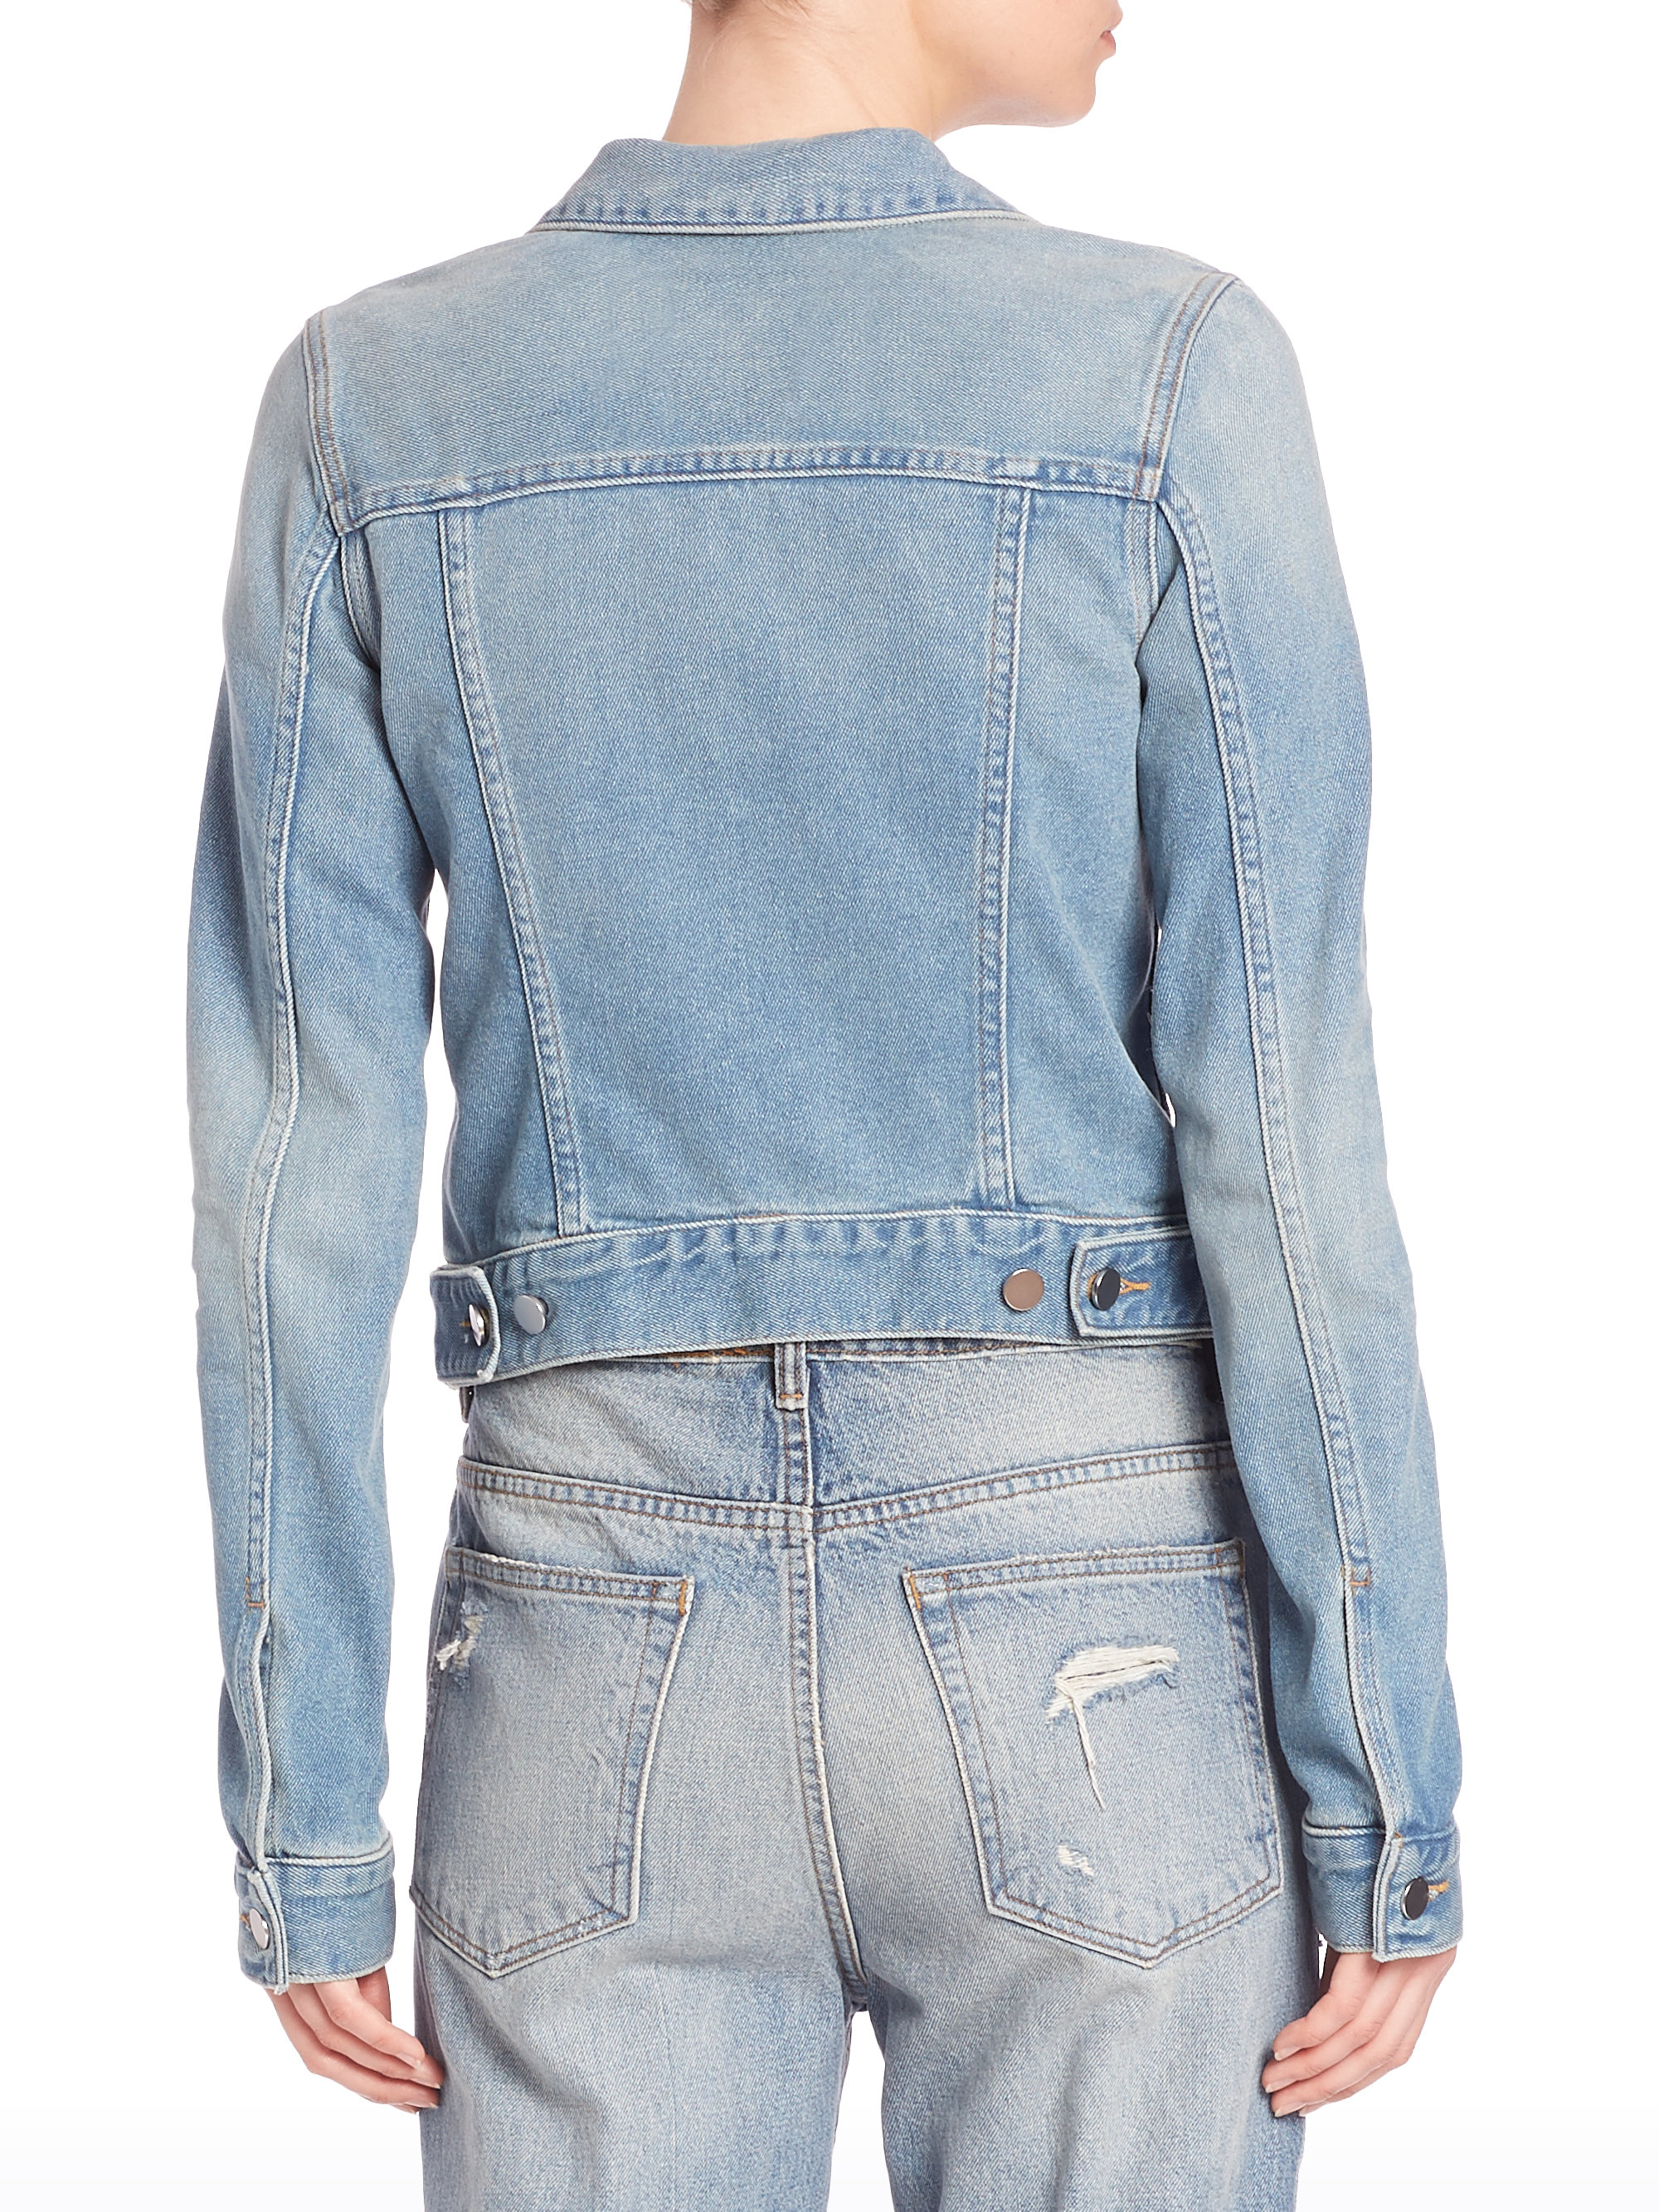 Alexander wang Axle Cropped Denim Jacket in Blue | Lyst